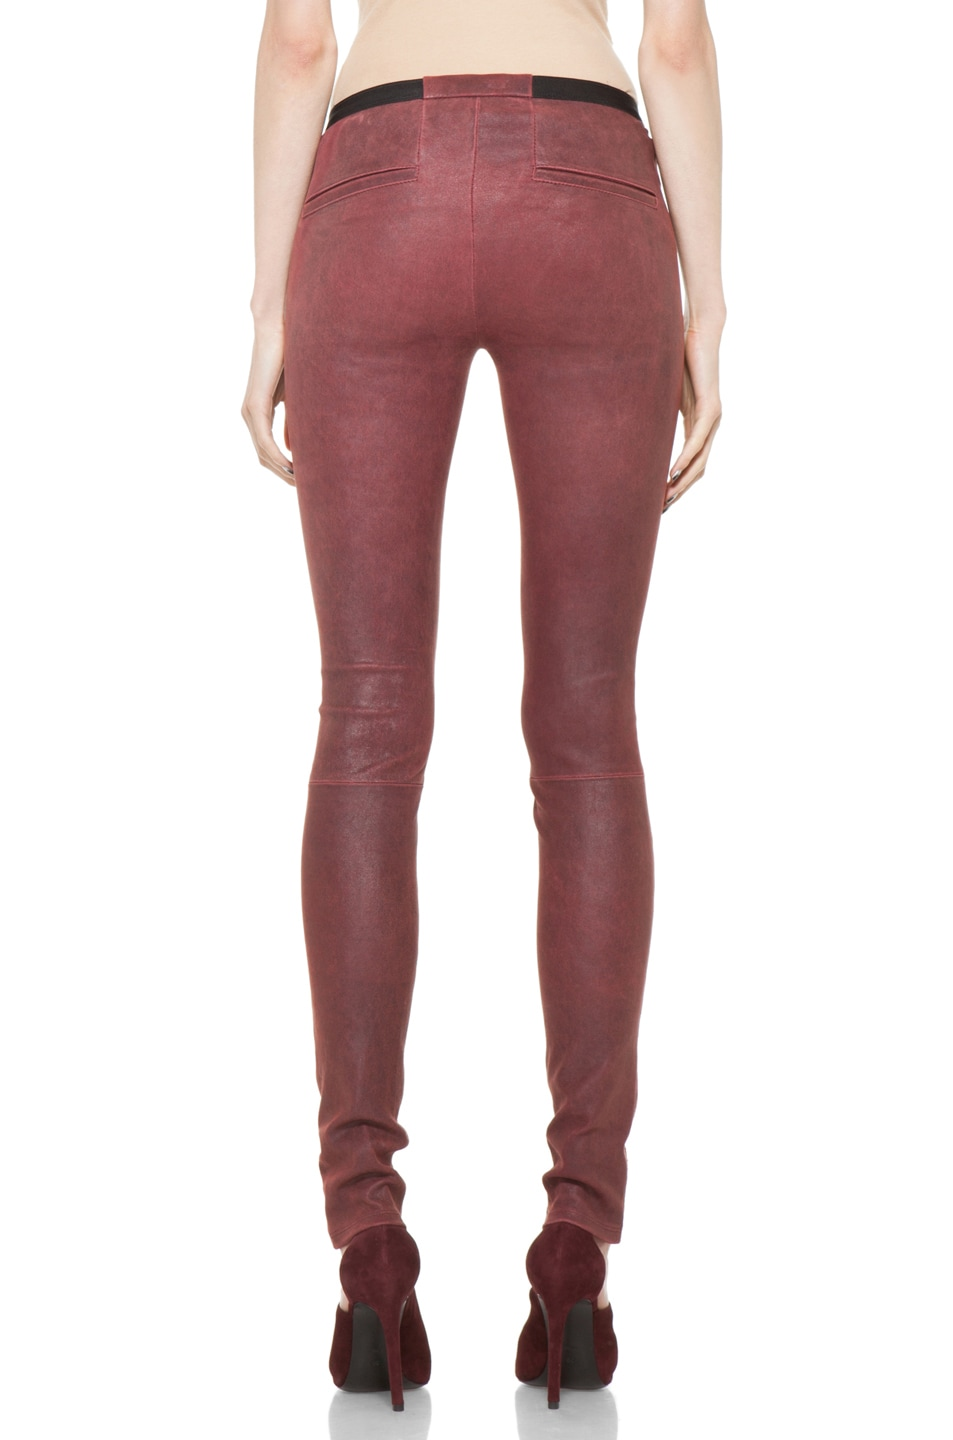 Image 4 of Helmut Lang Patina Stretch Cheyenne Leather Legging in Fever